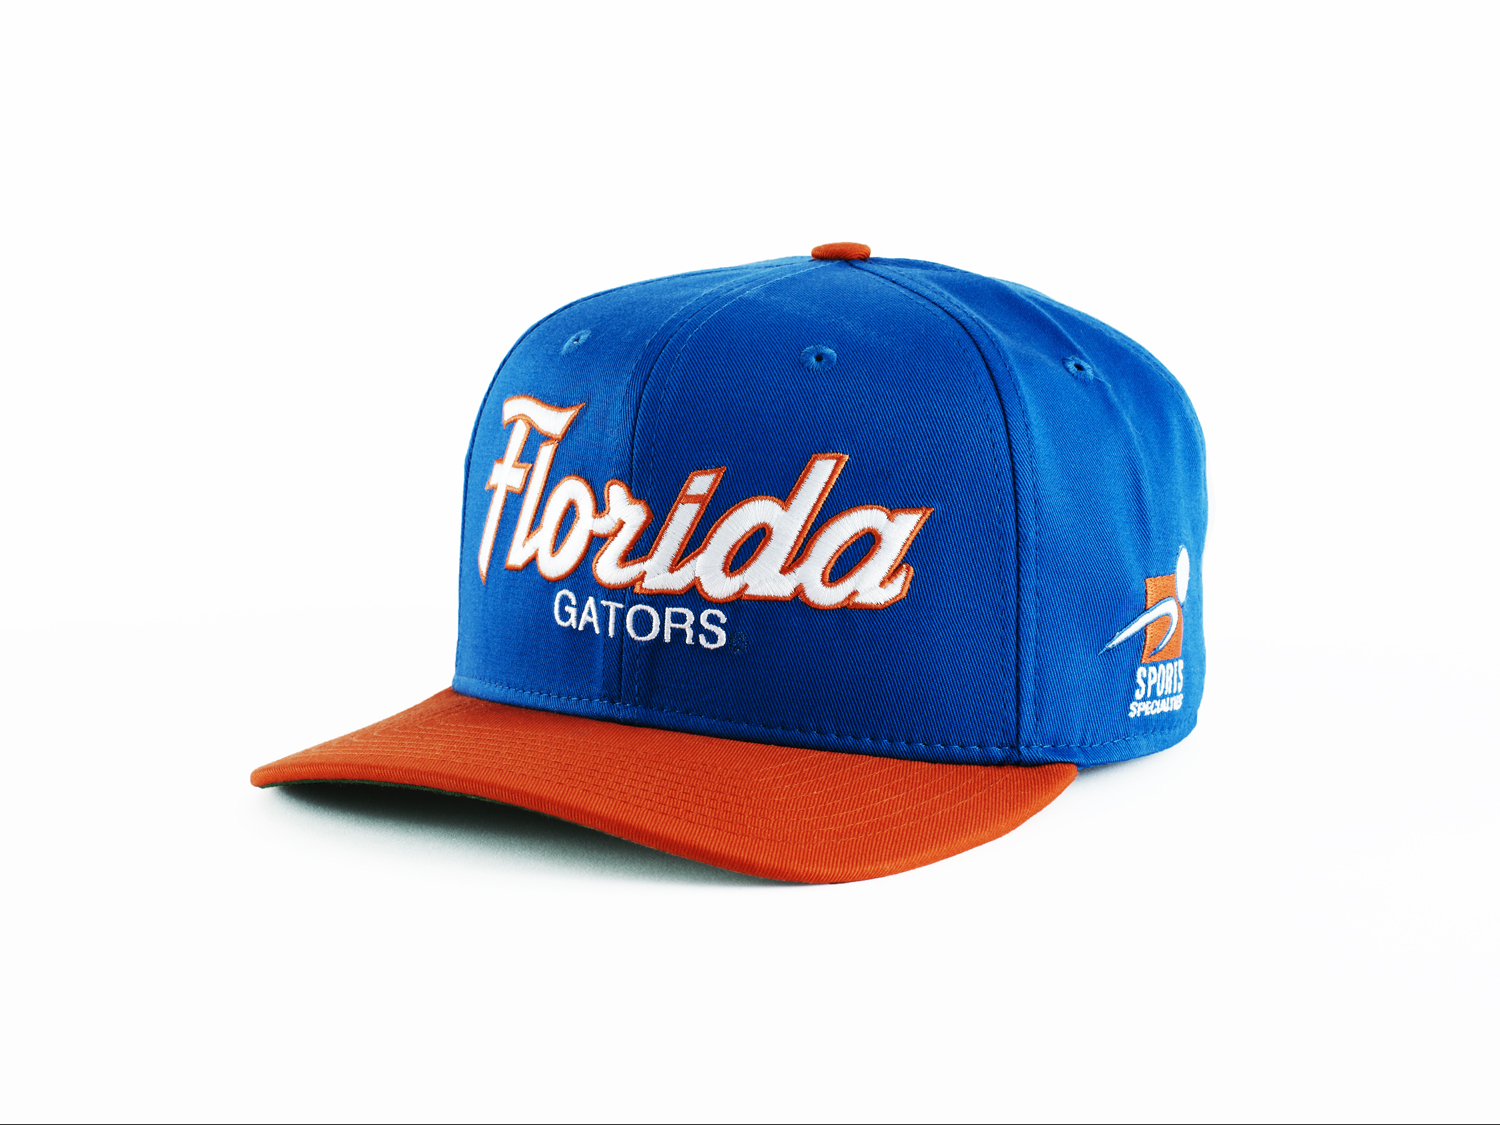 9c53cdd8a7010 ... latest Sports Specialties collection of caps includes retro inspired  snapbacks for UCONN